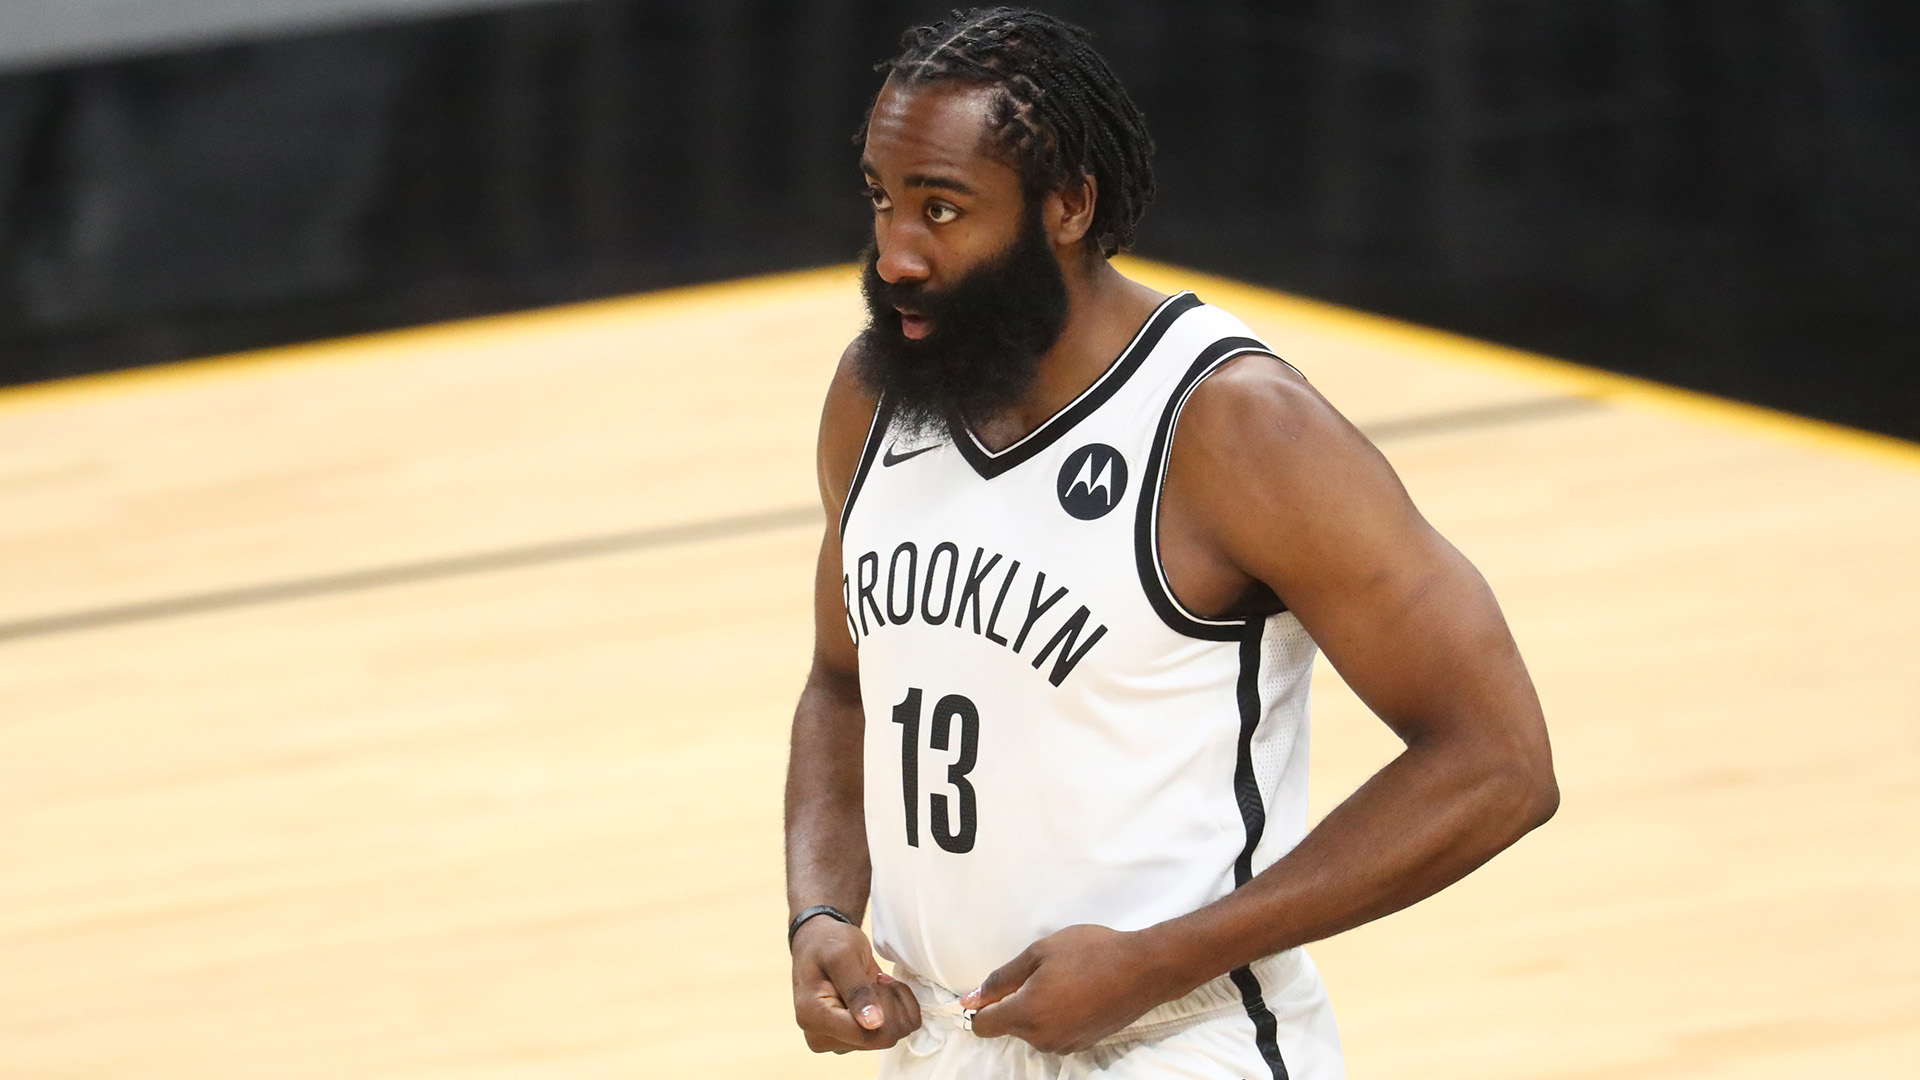 James Harden (hamstring) says he plans to play again before playoffs